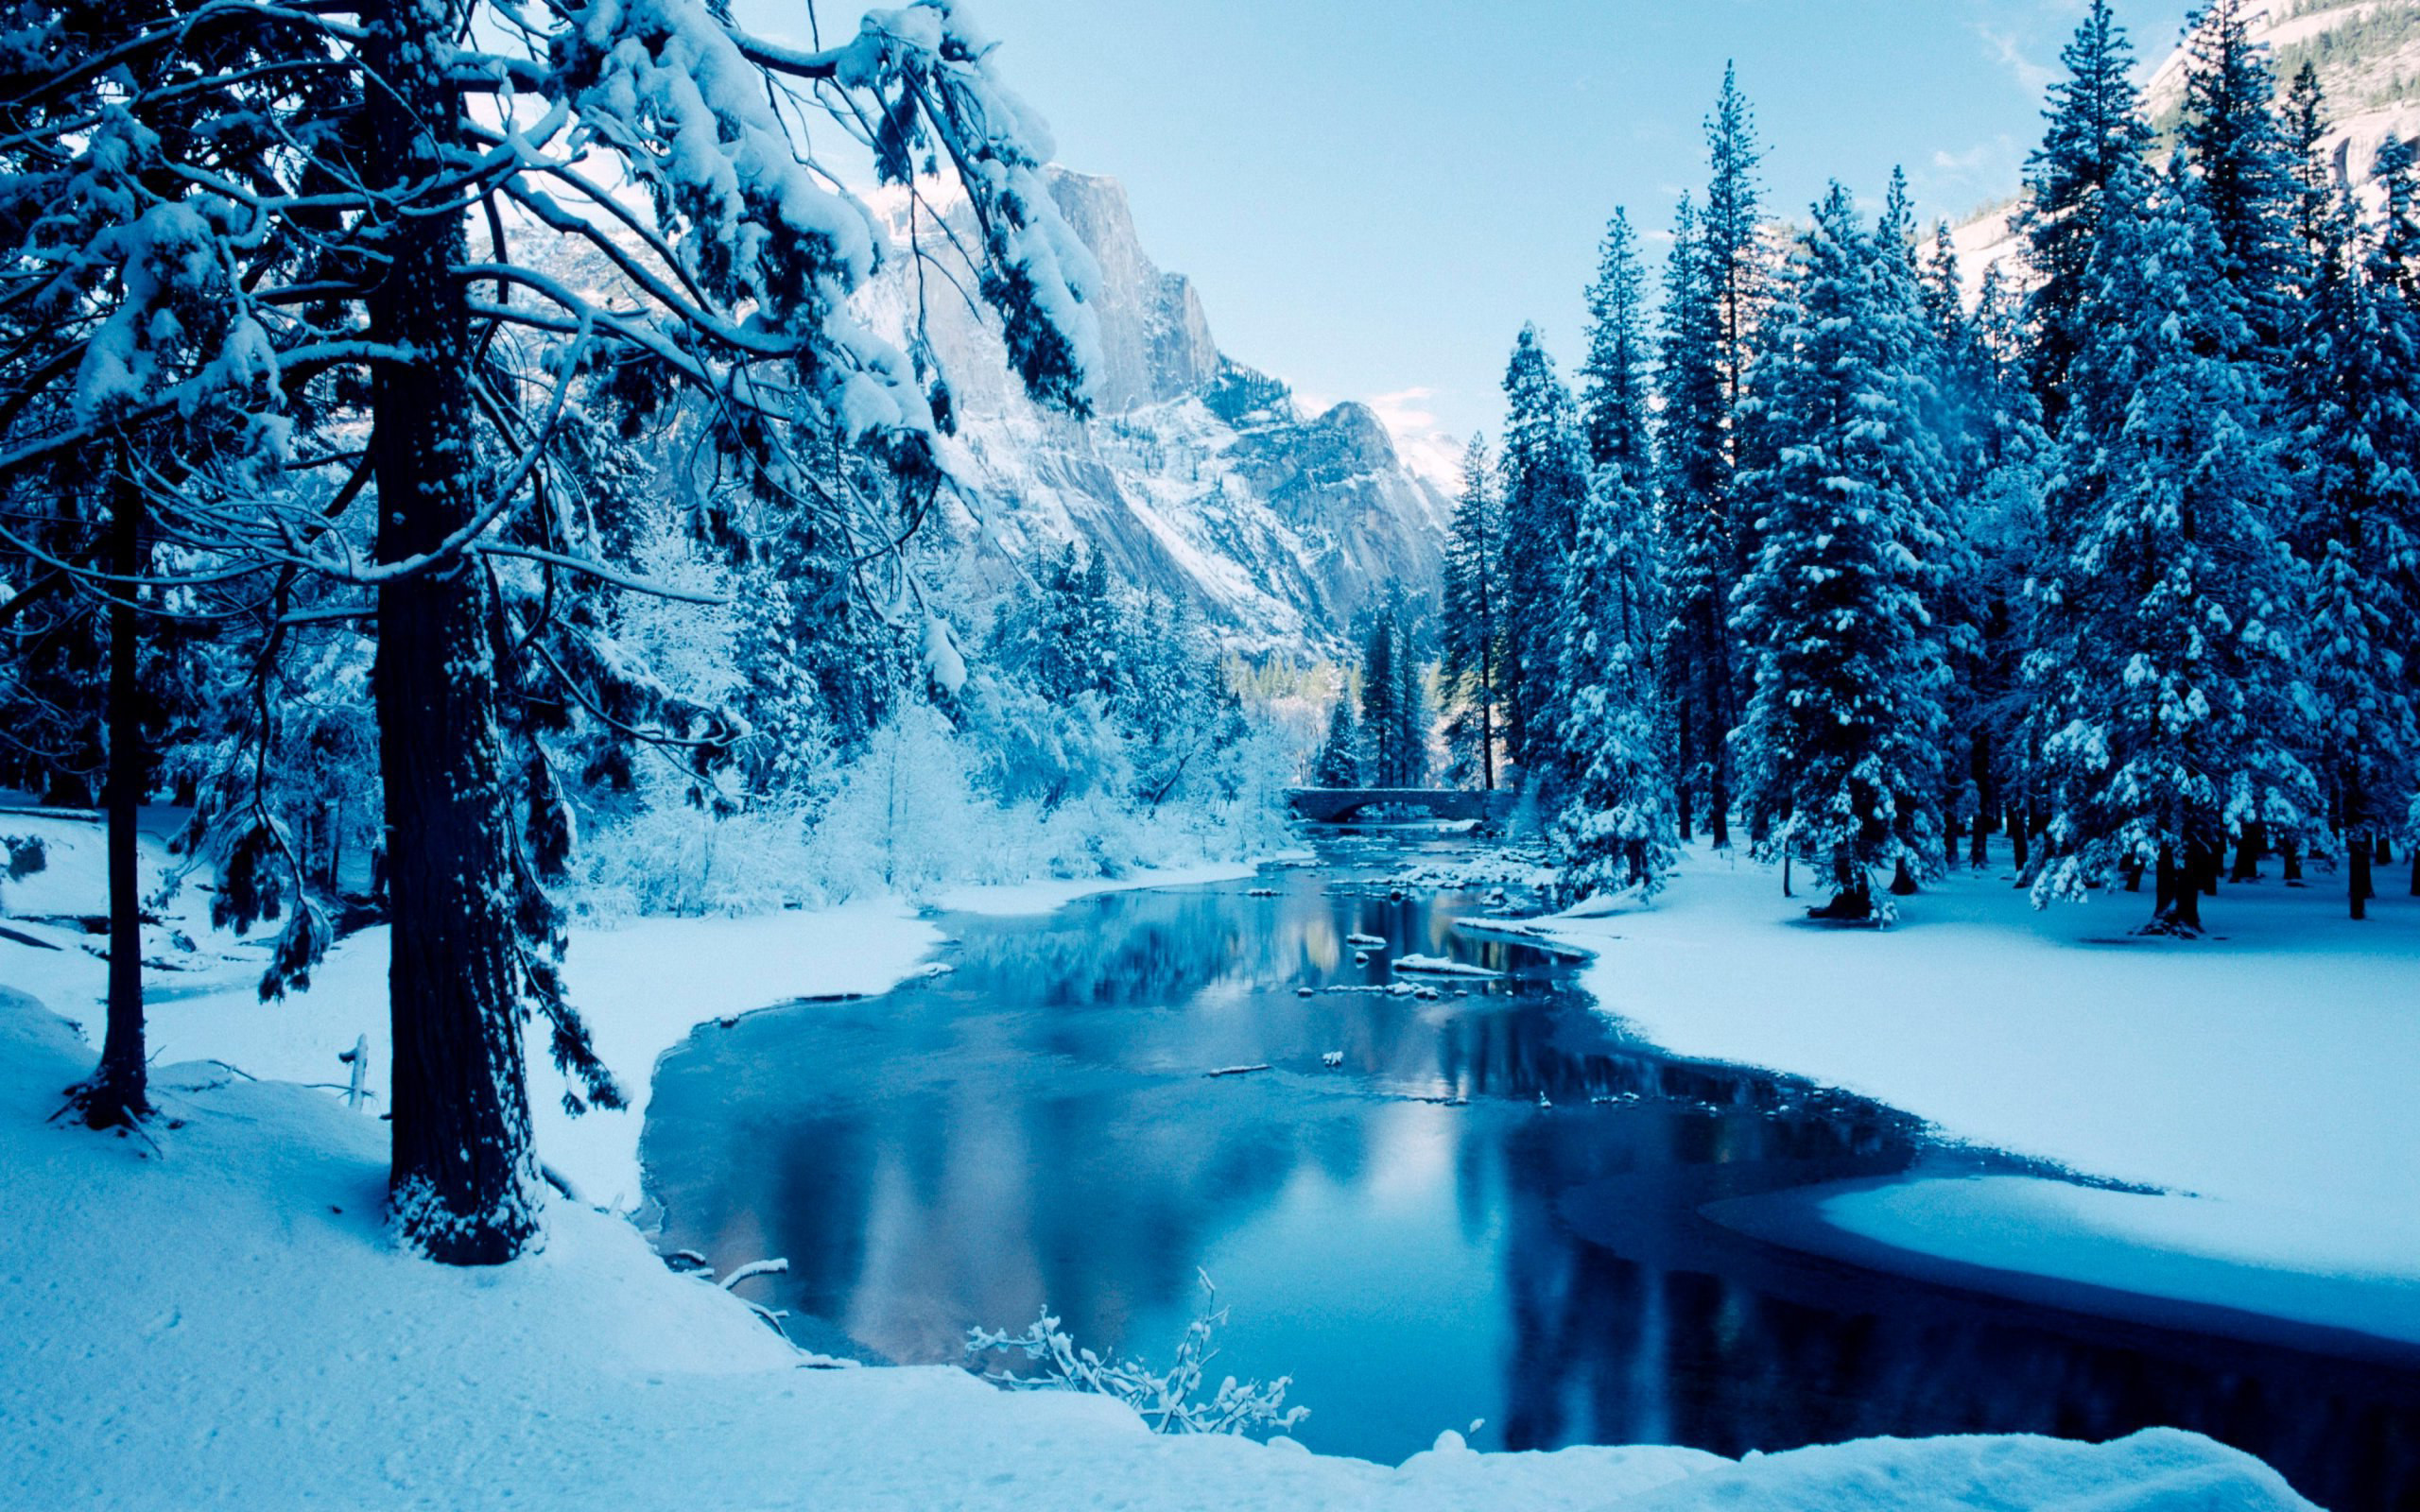 2560x1600 Winter Ice Lake Scenes Desktop Wallpaper | Wallpapers | Pinterest | Winter  scenes, Scene and Wallpaper